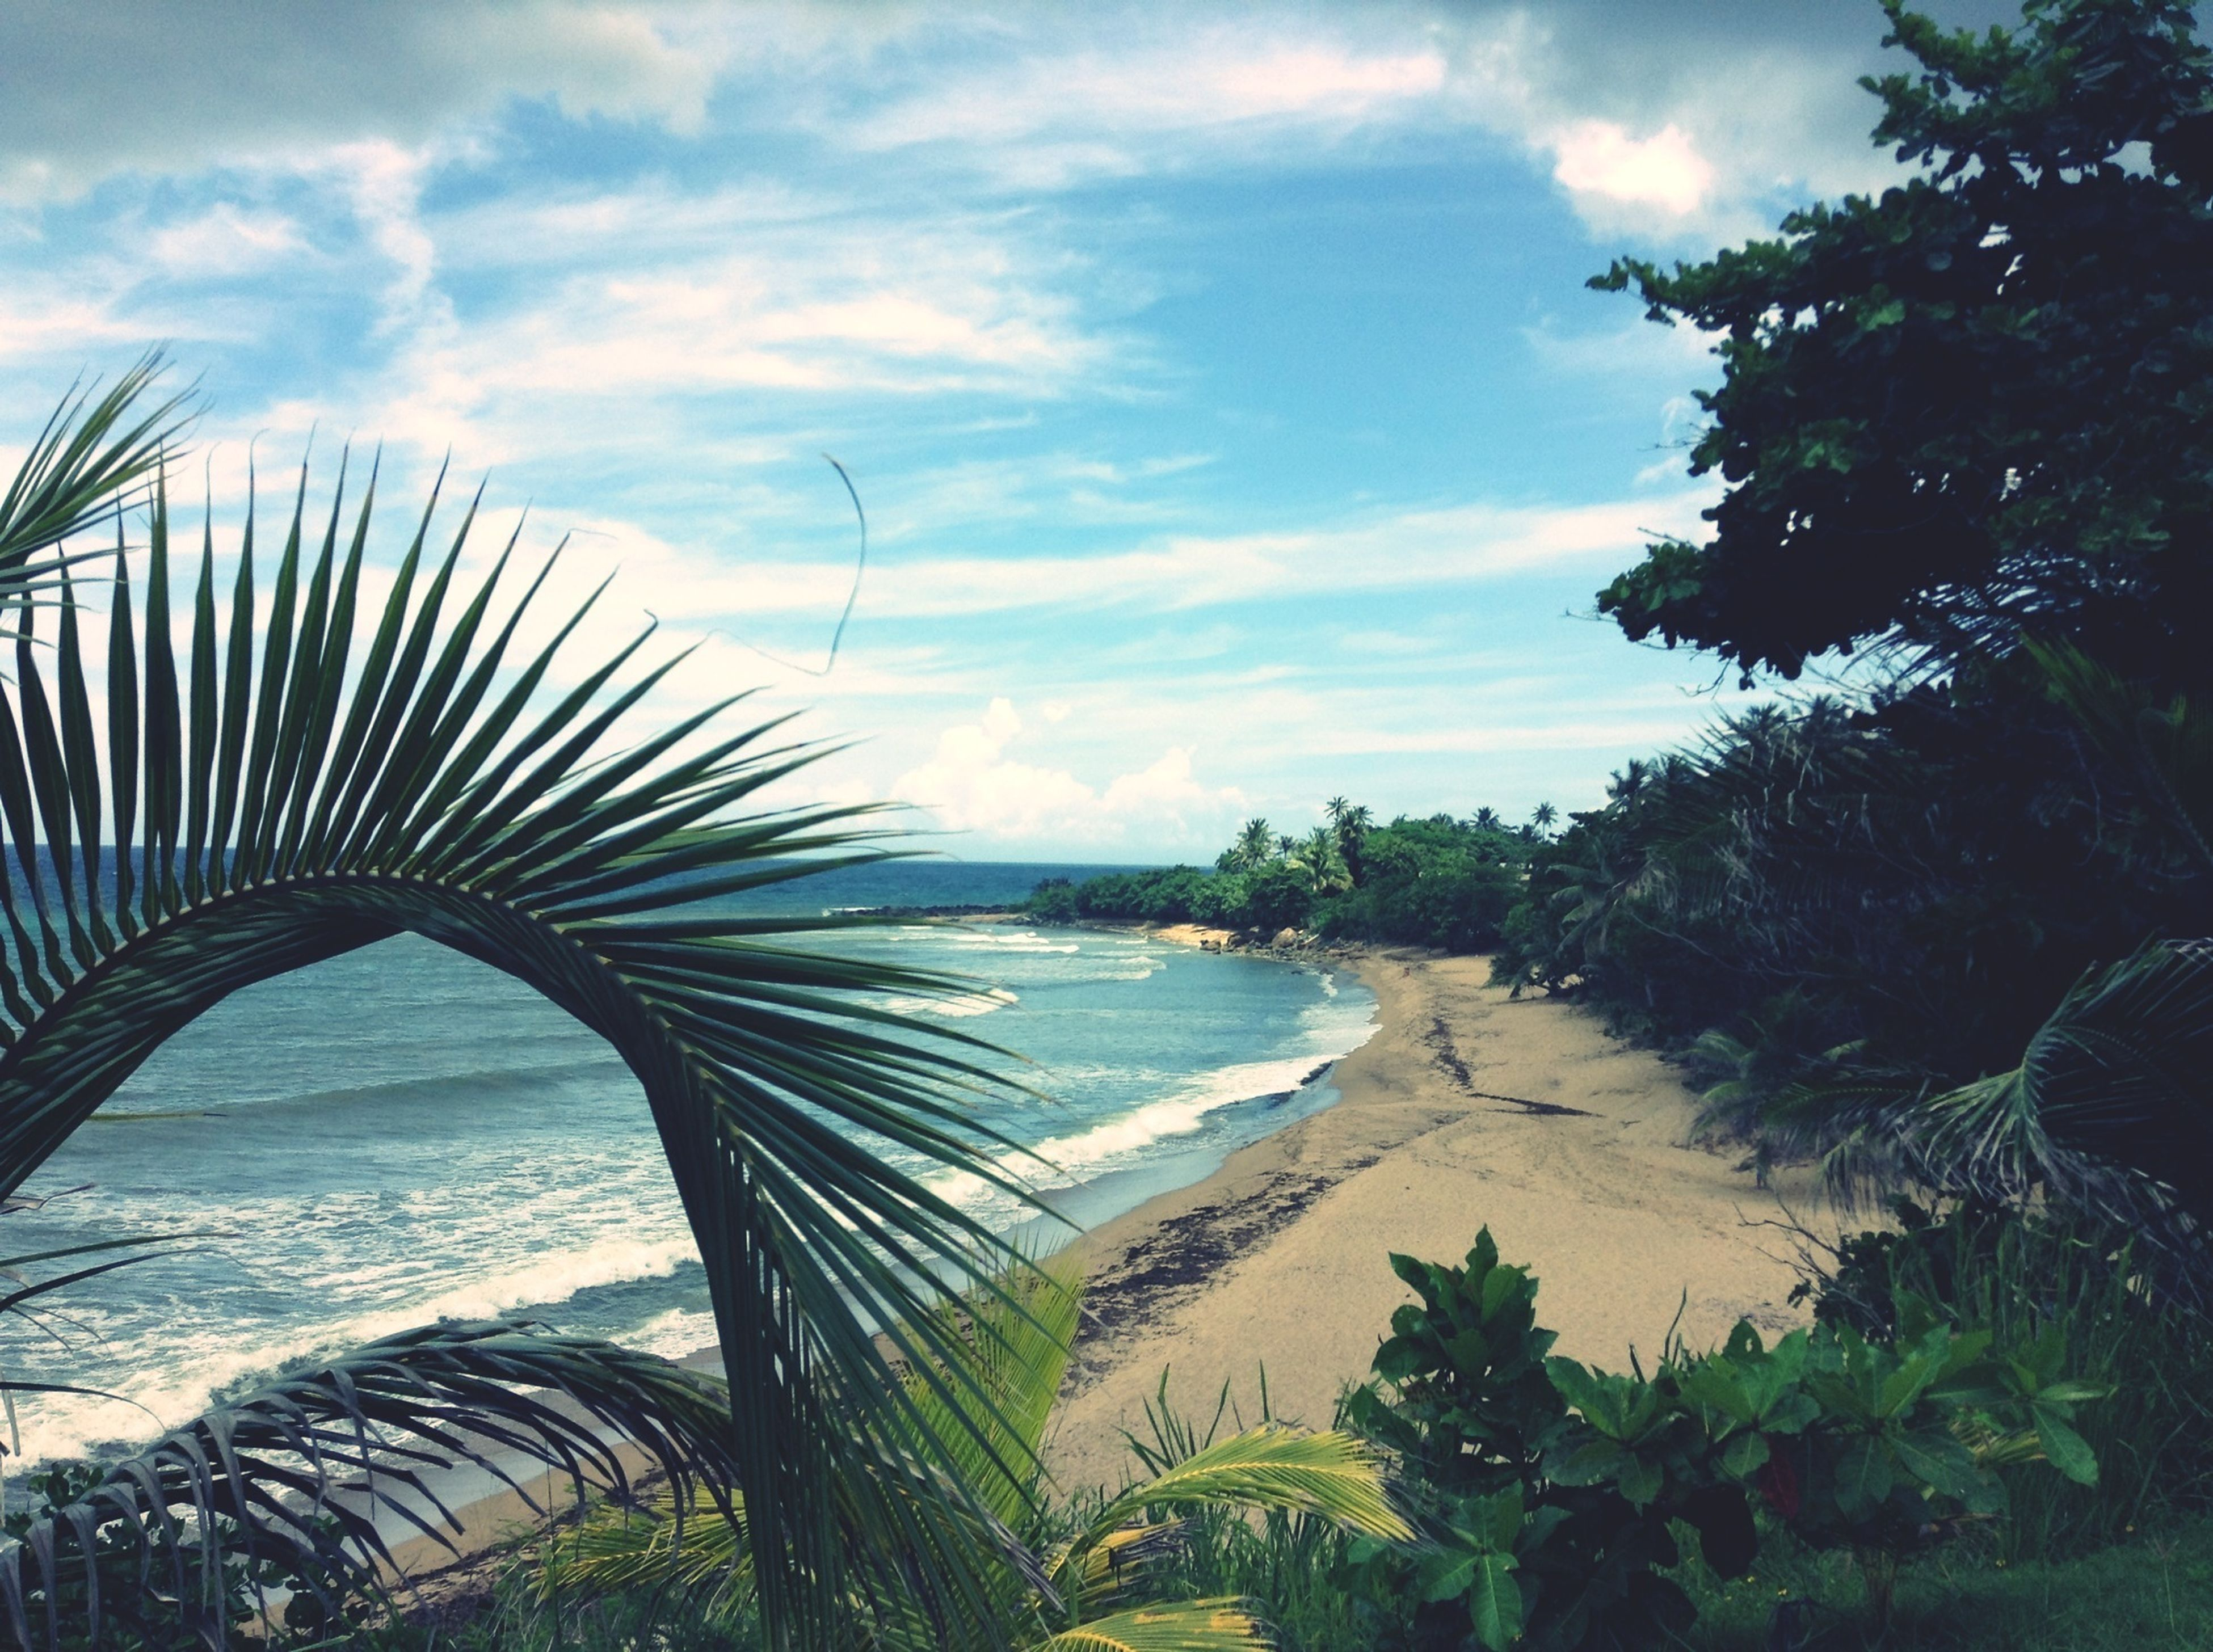 water, sea, palm tree, sky, beach, tranquility, tranquil scene, beauty in nature, scenics, tree, nature, shore, sand, horizon over water, cloud - sky, growth, cloud, idyllic, day, plant